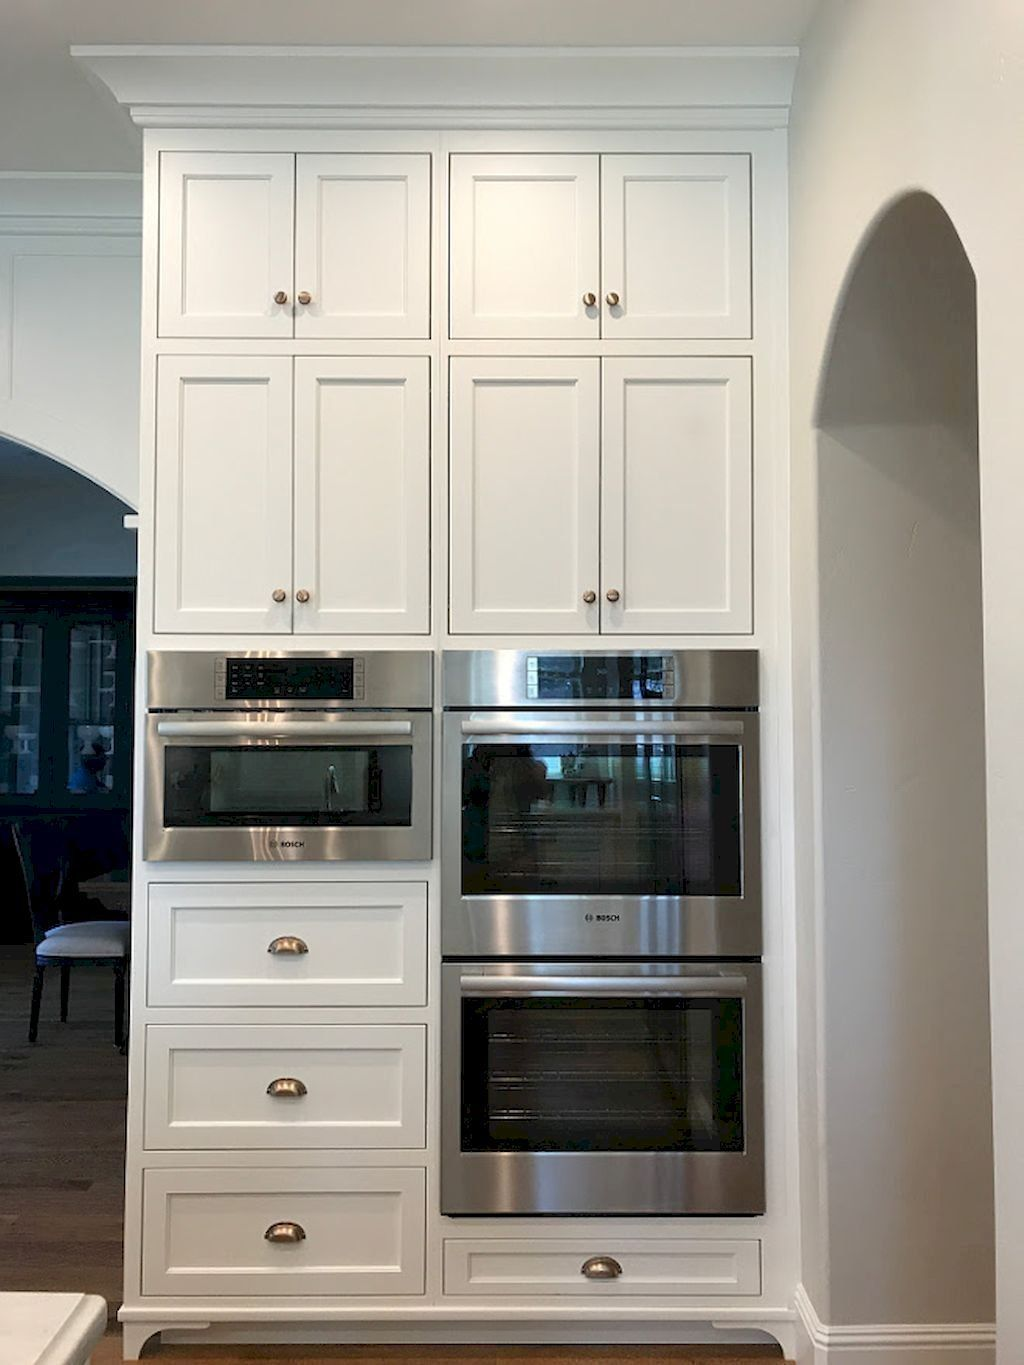 We Ve Recently Noticed A New Kitchen Design Idea That Falls Into This Subtle But S Kitchen Renovation Inspiration White Kitchen Renovation New Kitchen Cabinets